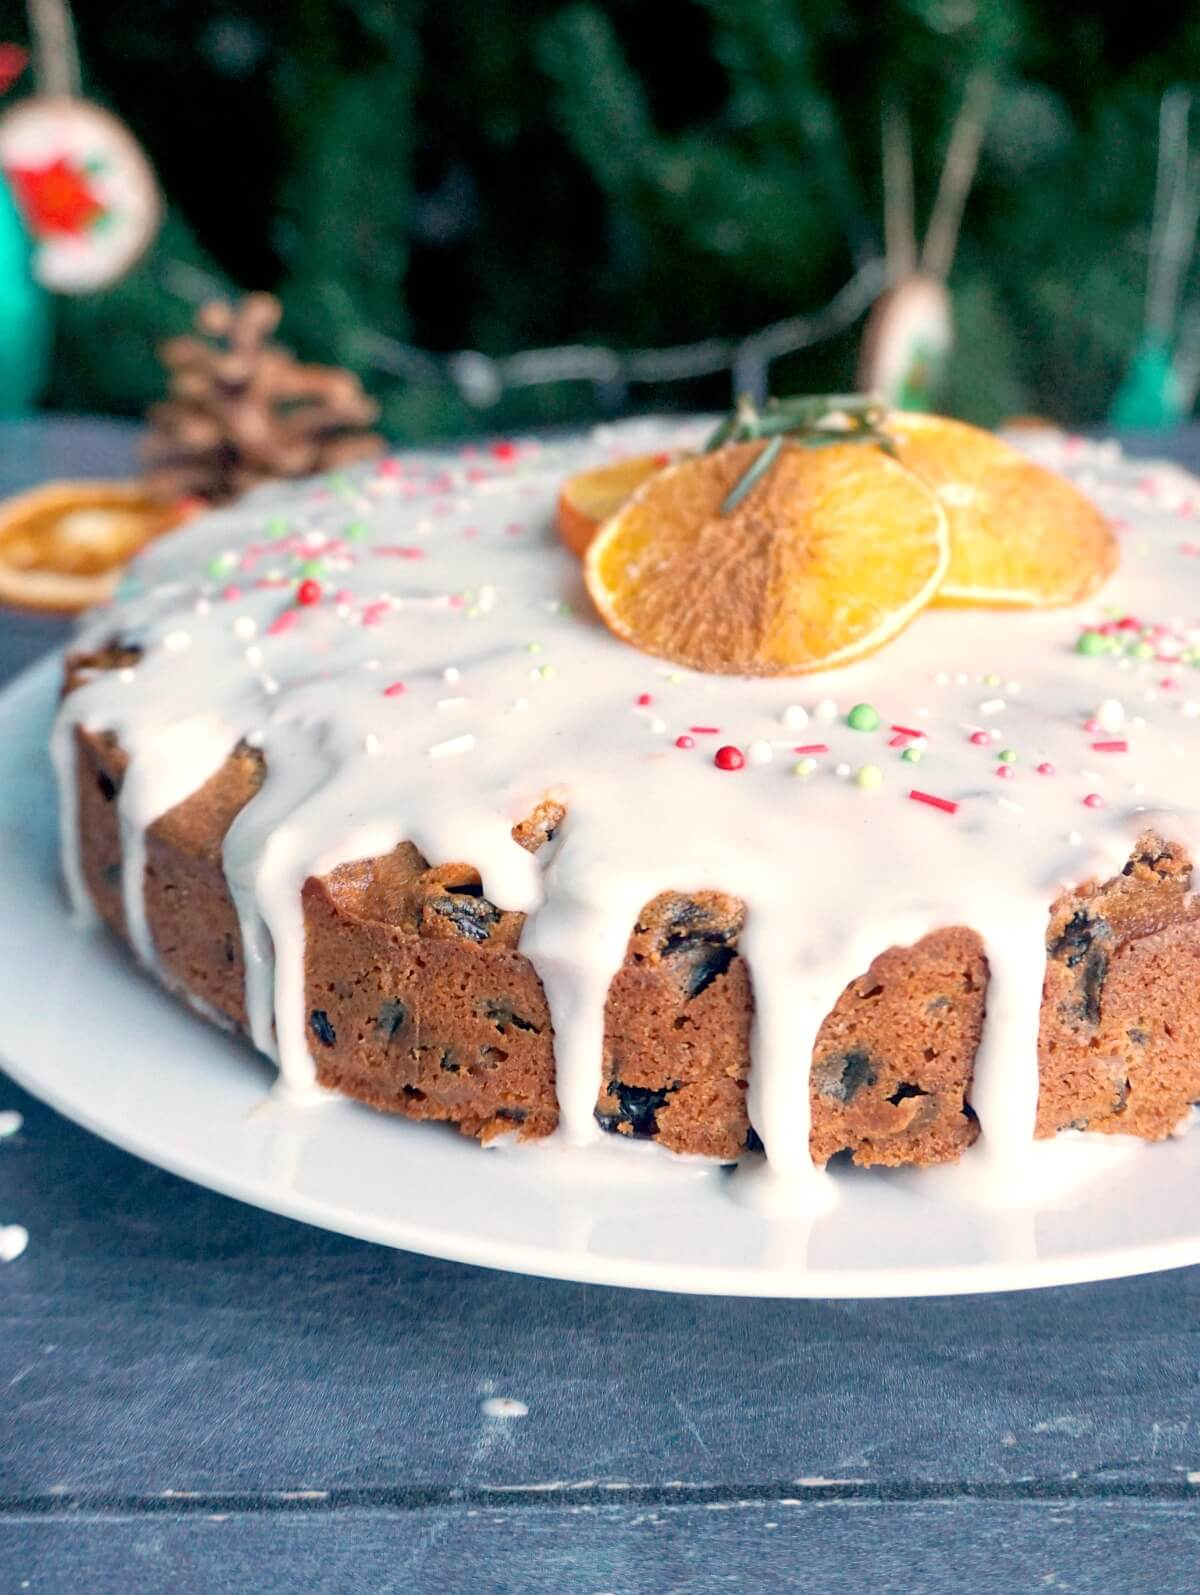 A Christmas cake with icing on top and dried orange slices